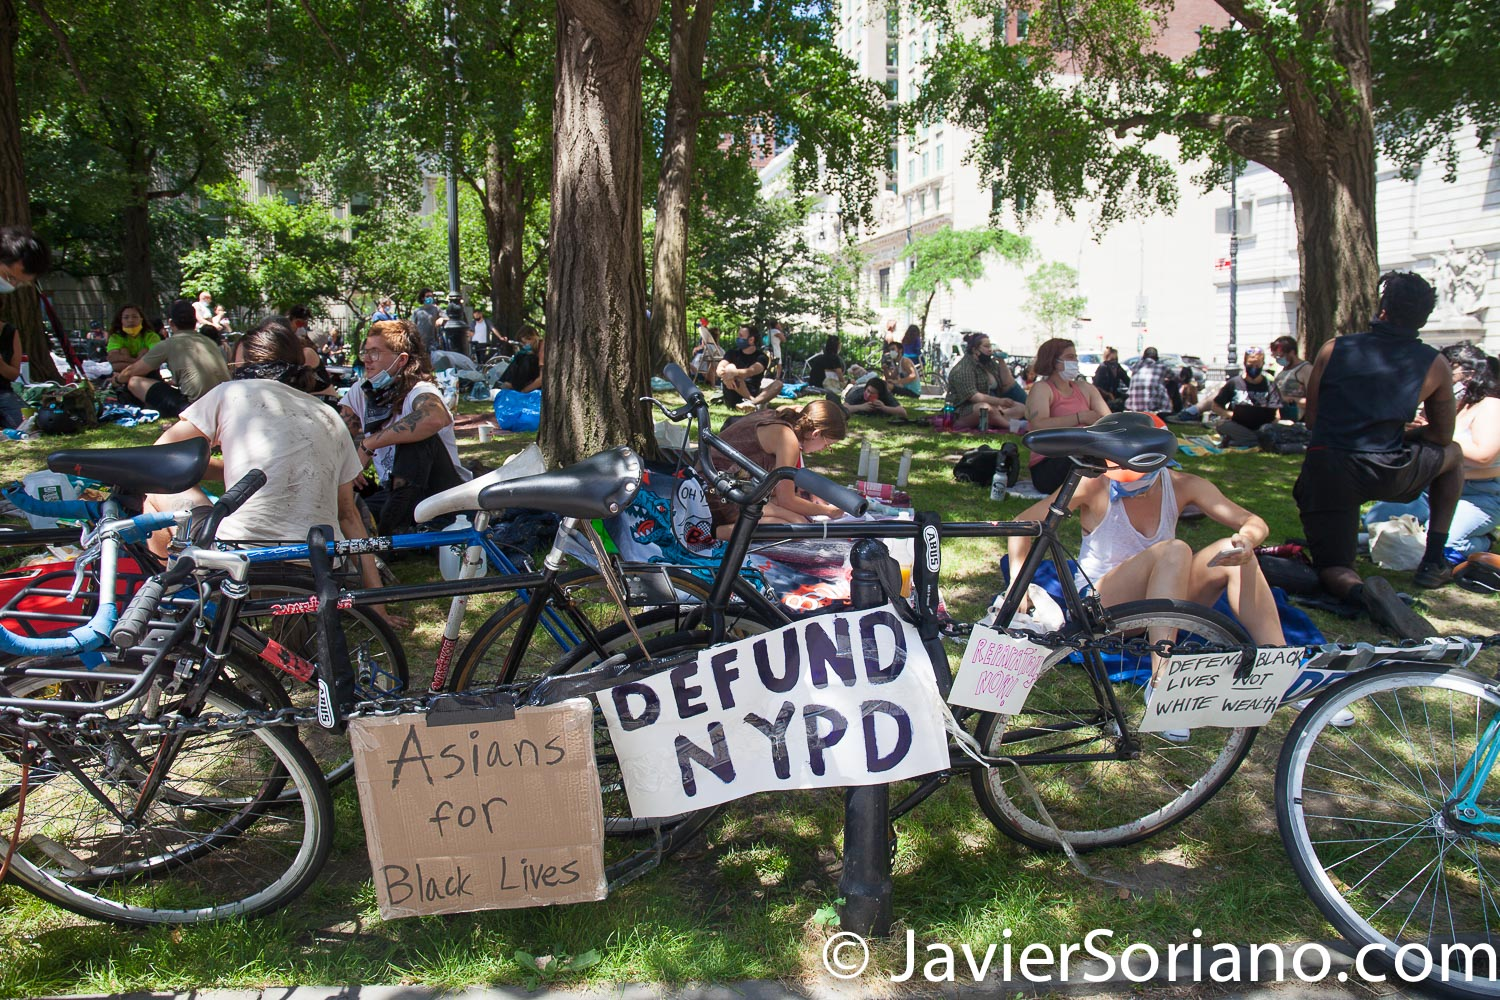 """Wednesday, June 24, 2020. New York City – On Tuesday, June 23, 2020, more than hundred people along with VOCAL-New York and New York Communities for Change started to """"Occupy City Hall"""" in New York City. They demand NYC Council members and NYC Mayor Bill de Blasio Defund The NYPD by at least $1 billion and invest in Youth services, affordable housing, healthcare, public education, social workers, and other social services in low income communities. Activists say they are not leaving City Hall Park until at least $1 billion is cut from the NYPD's $6 billion budget. Photo by Javier Soriano/www.JavierSoriano.com"""